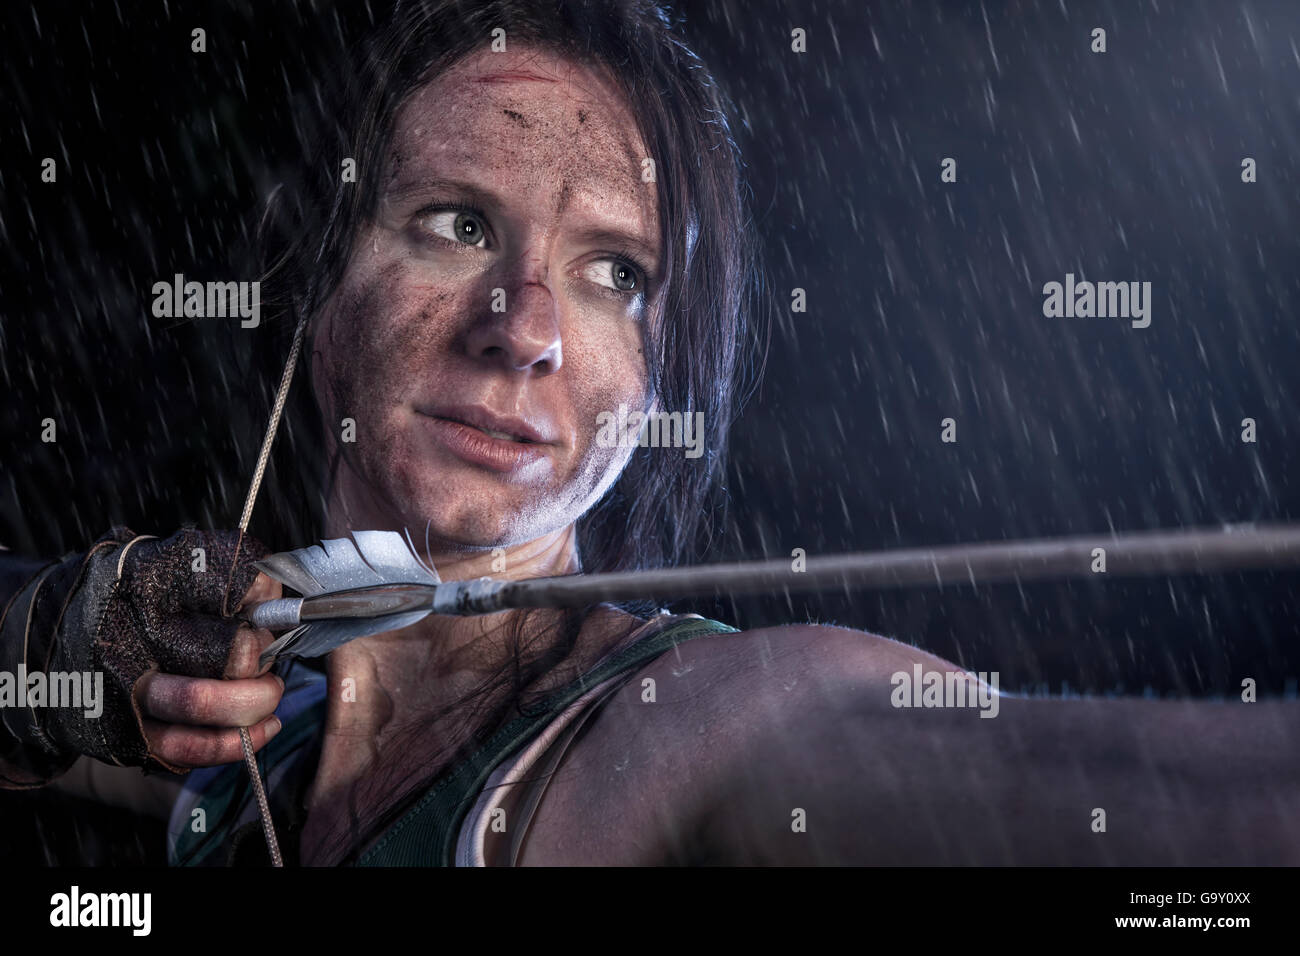 Rise of the Tomb Raider. Woman dressed up as Lara Croft stands in the rain, aiming with a bow and pulling the bowstring - Stock Image